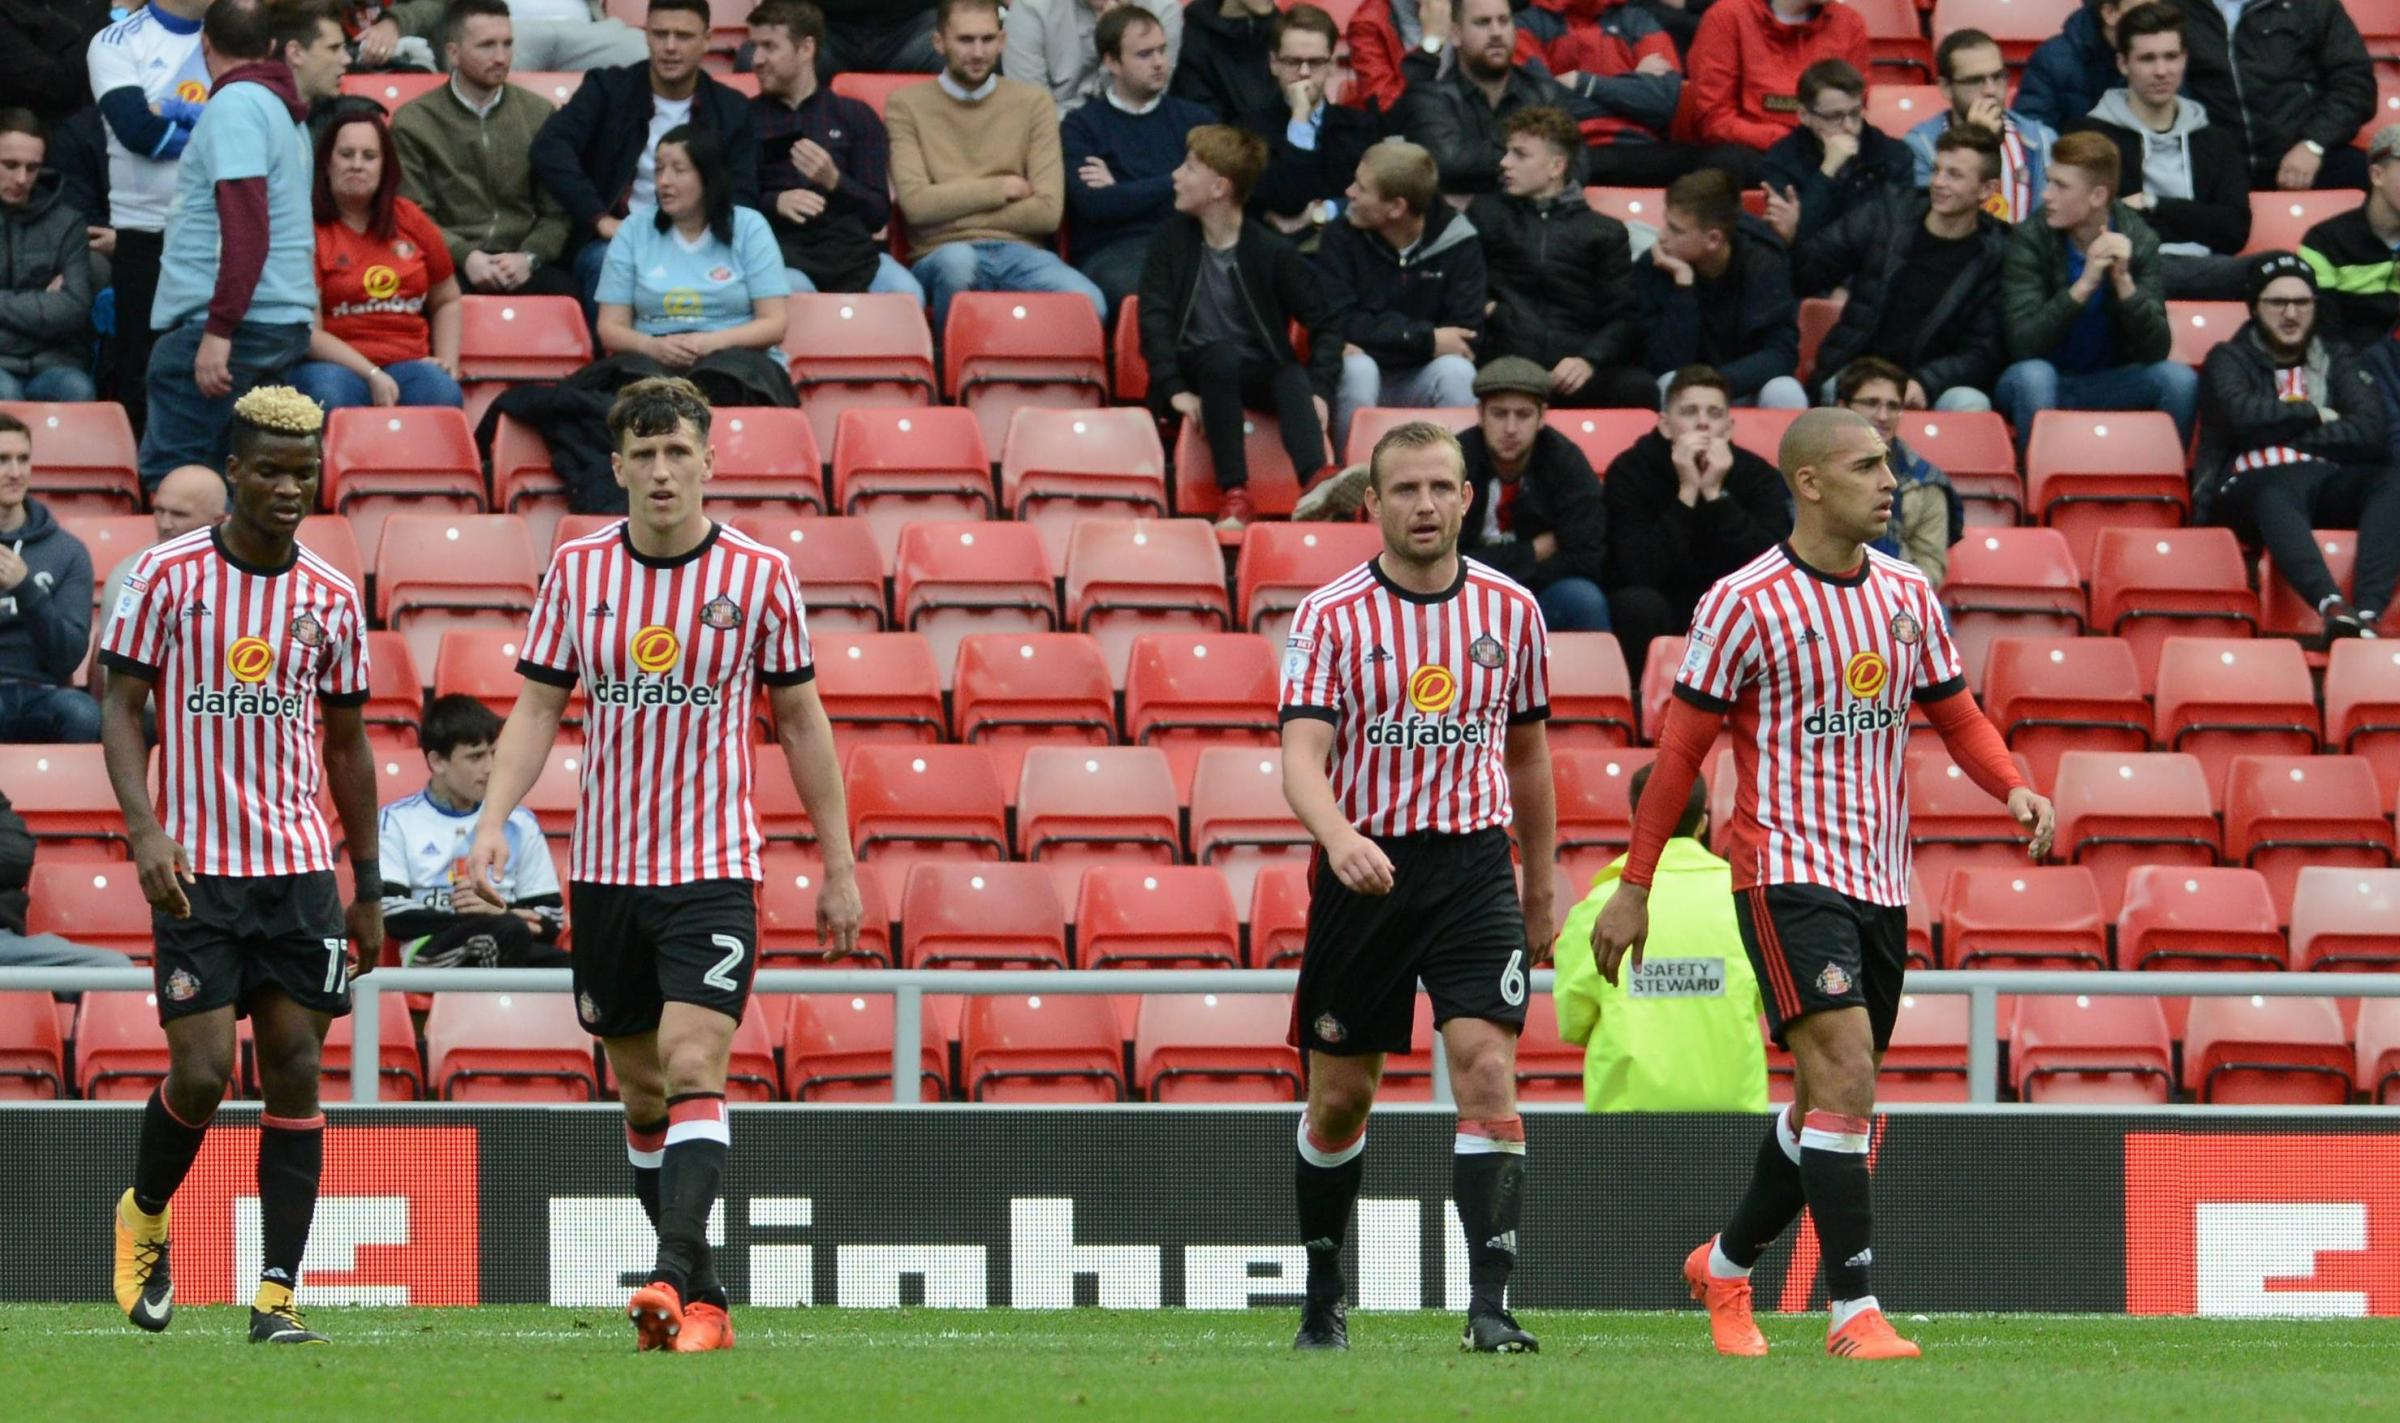 GLUM FACES: Sunderland's players trudge back to the centre-circle after conceding the opening goal in their 1-1 draw with QPR (Picture: North News)